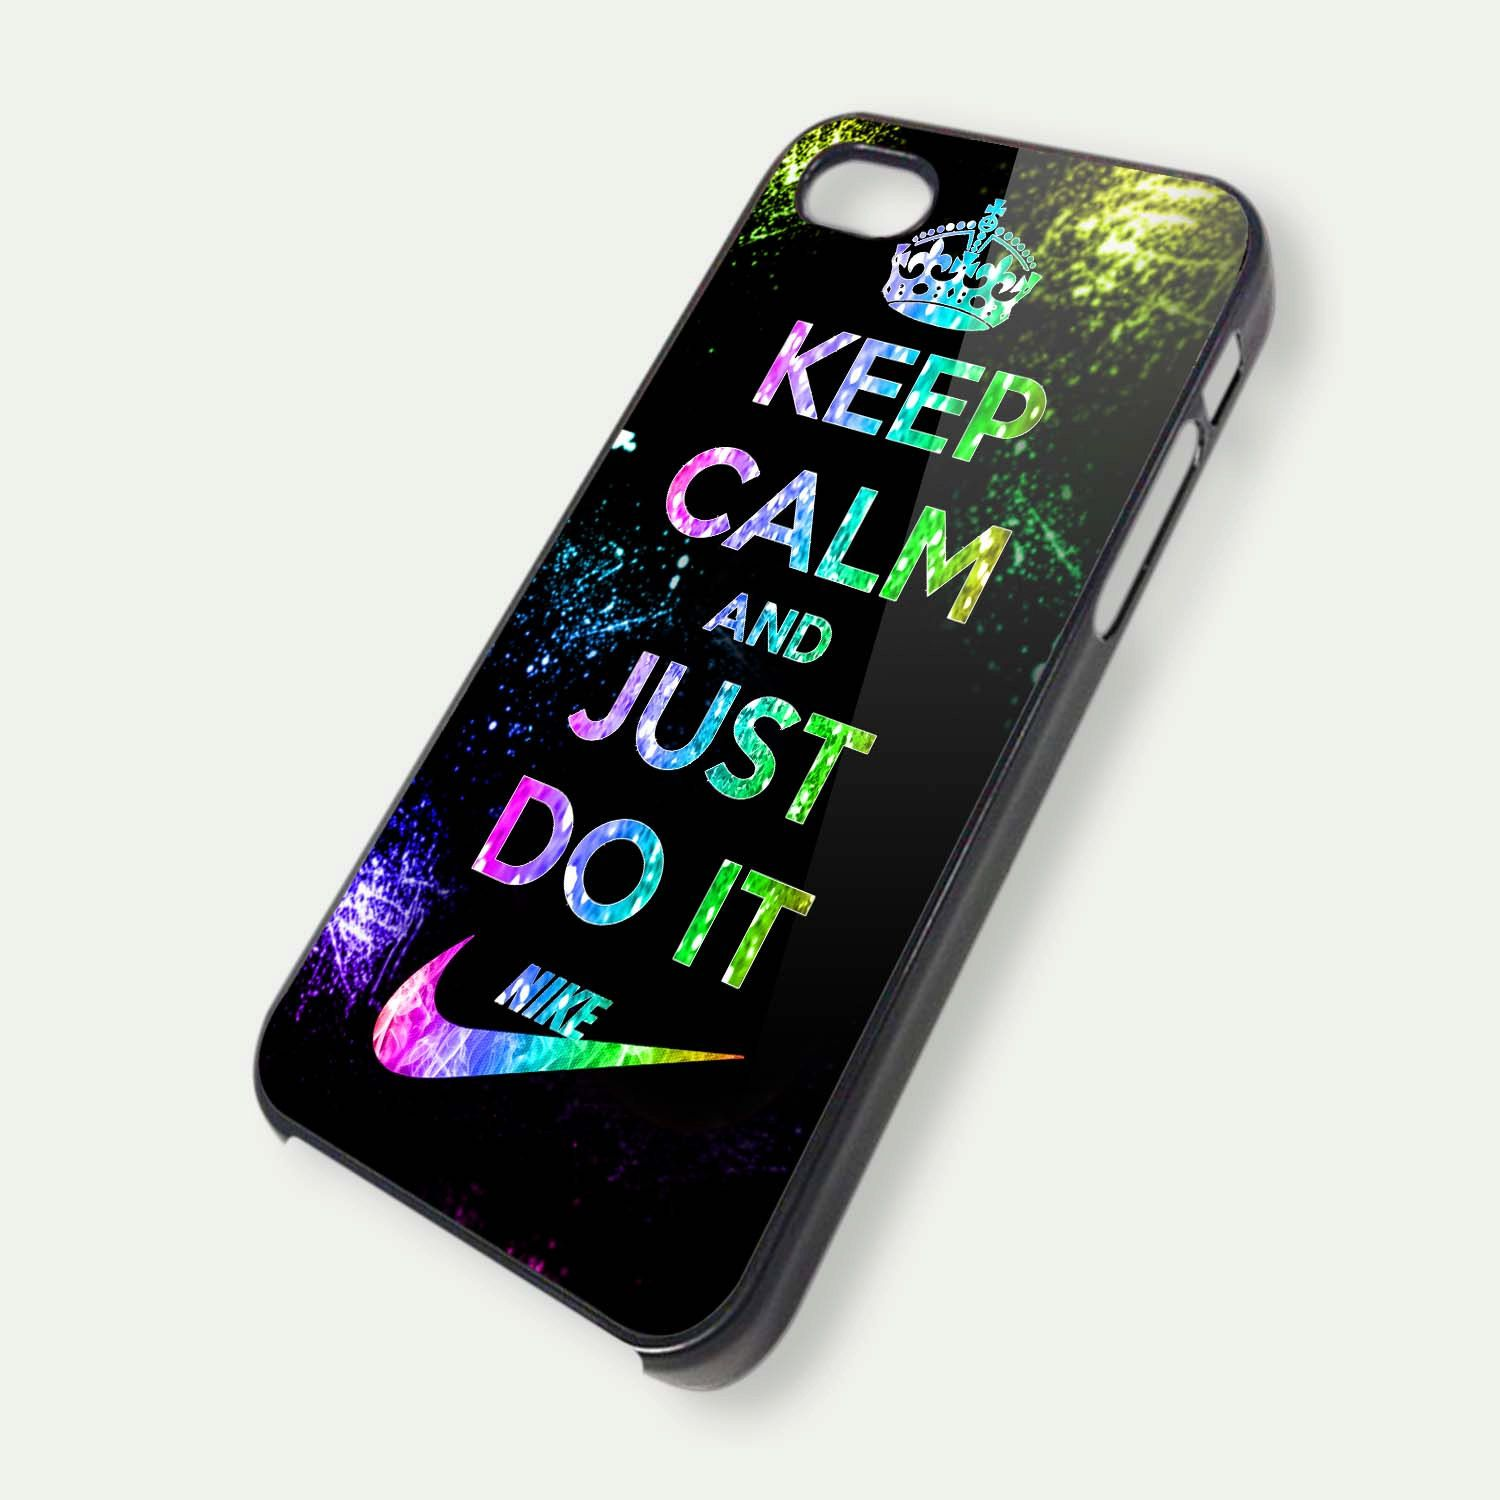 Keep Calm And Just Do It Nike iPhone 5 Case by ArminArtDesign, $14.99